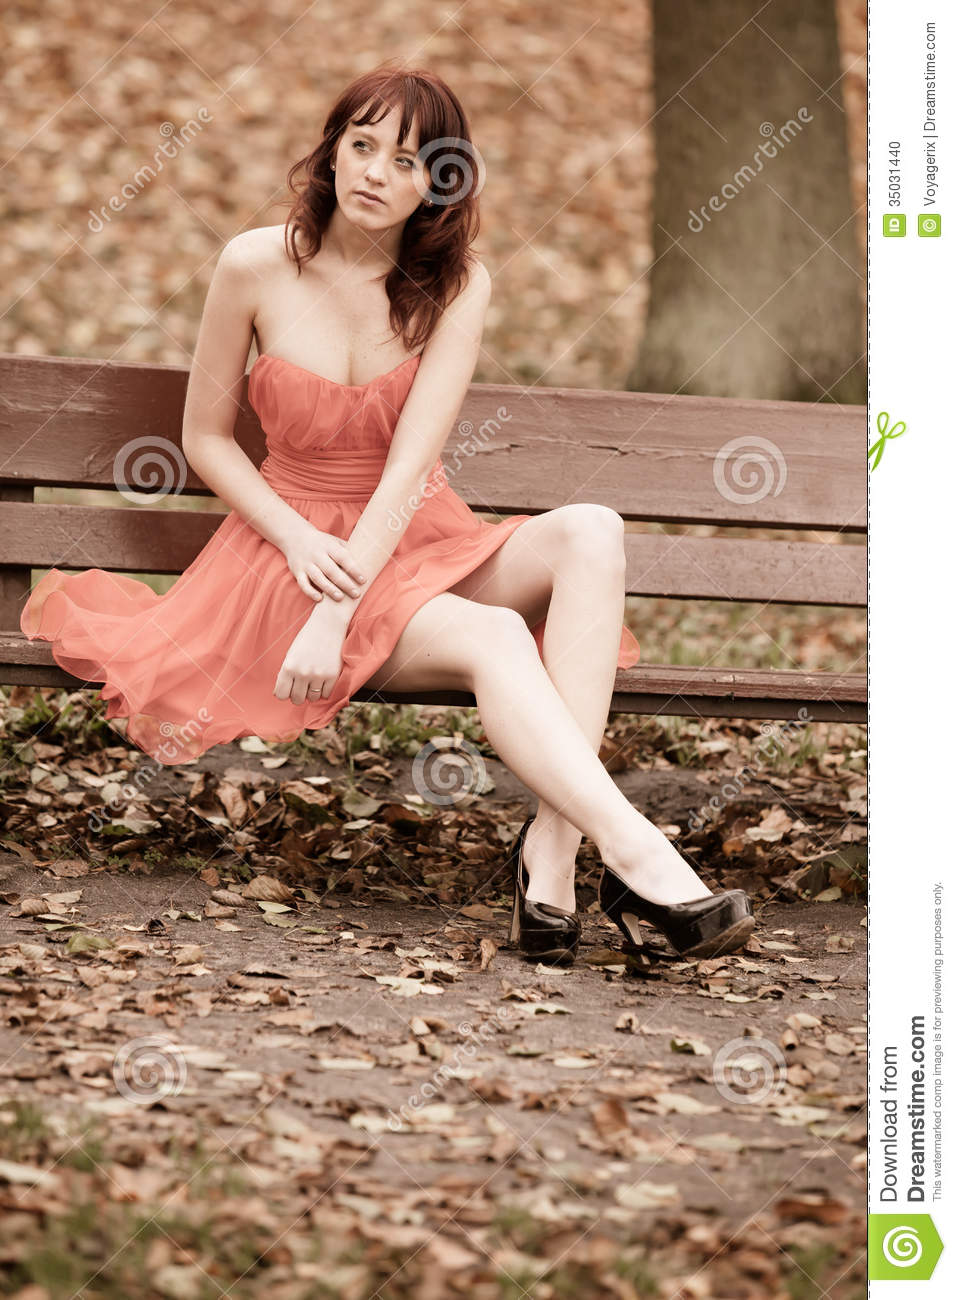 Fashion Young Woman In Red Dress Relaxing In Park On Bench Stock Photo Image 35031440